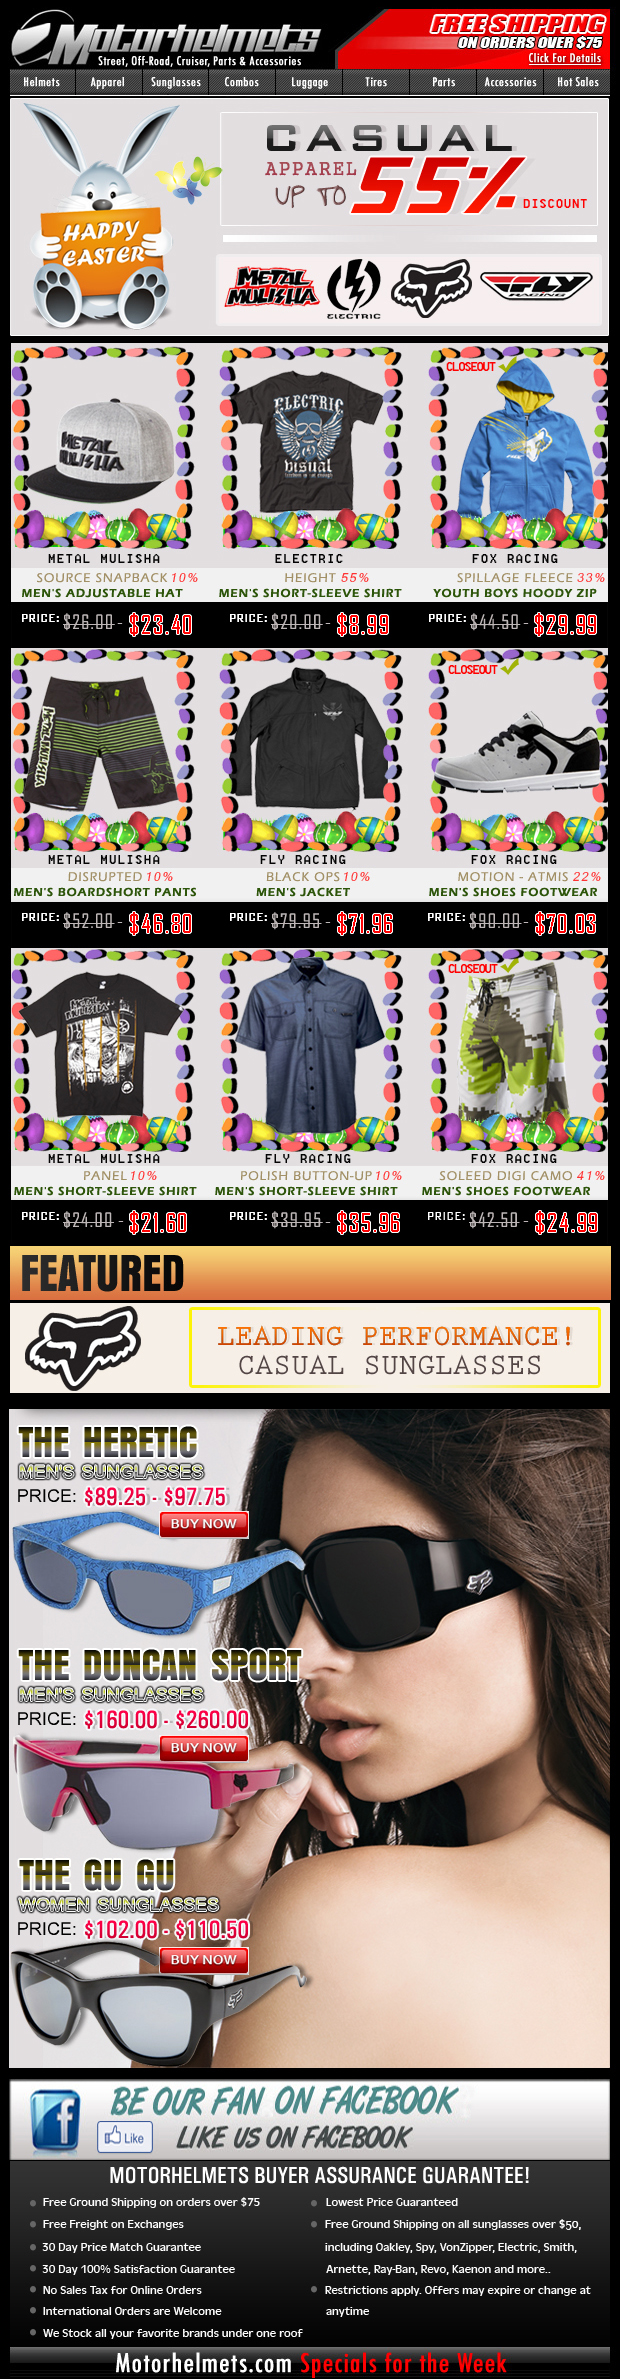 Easter Specials...save up to 55% off on Fox, Fly, Electric and Metal Mulisha Casuals!